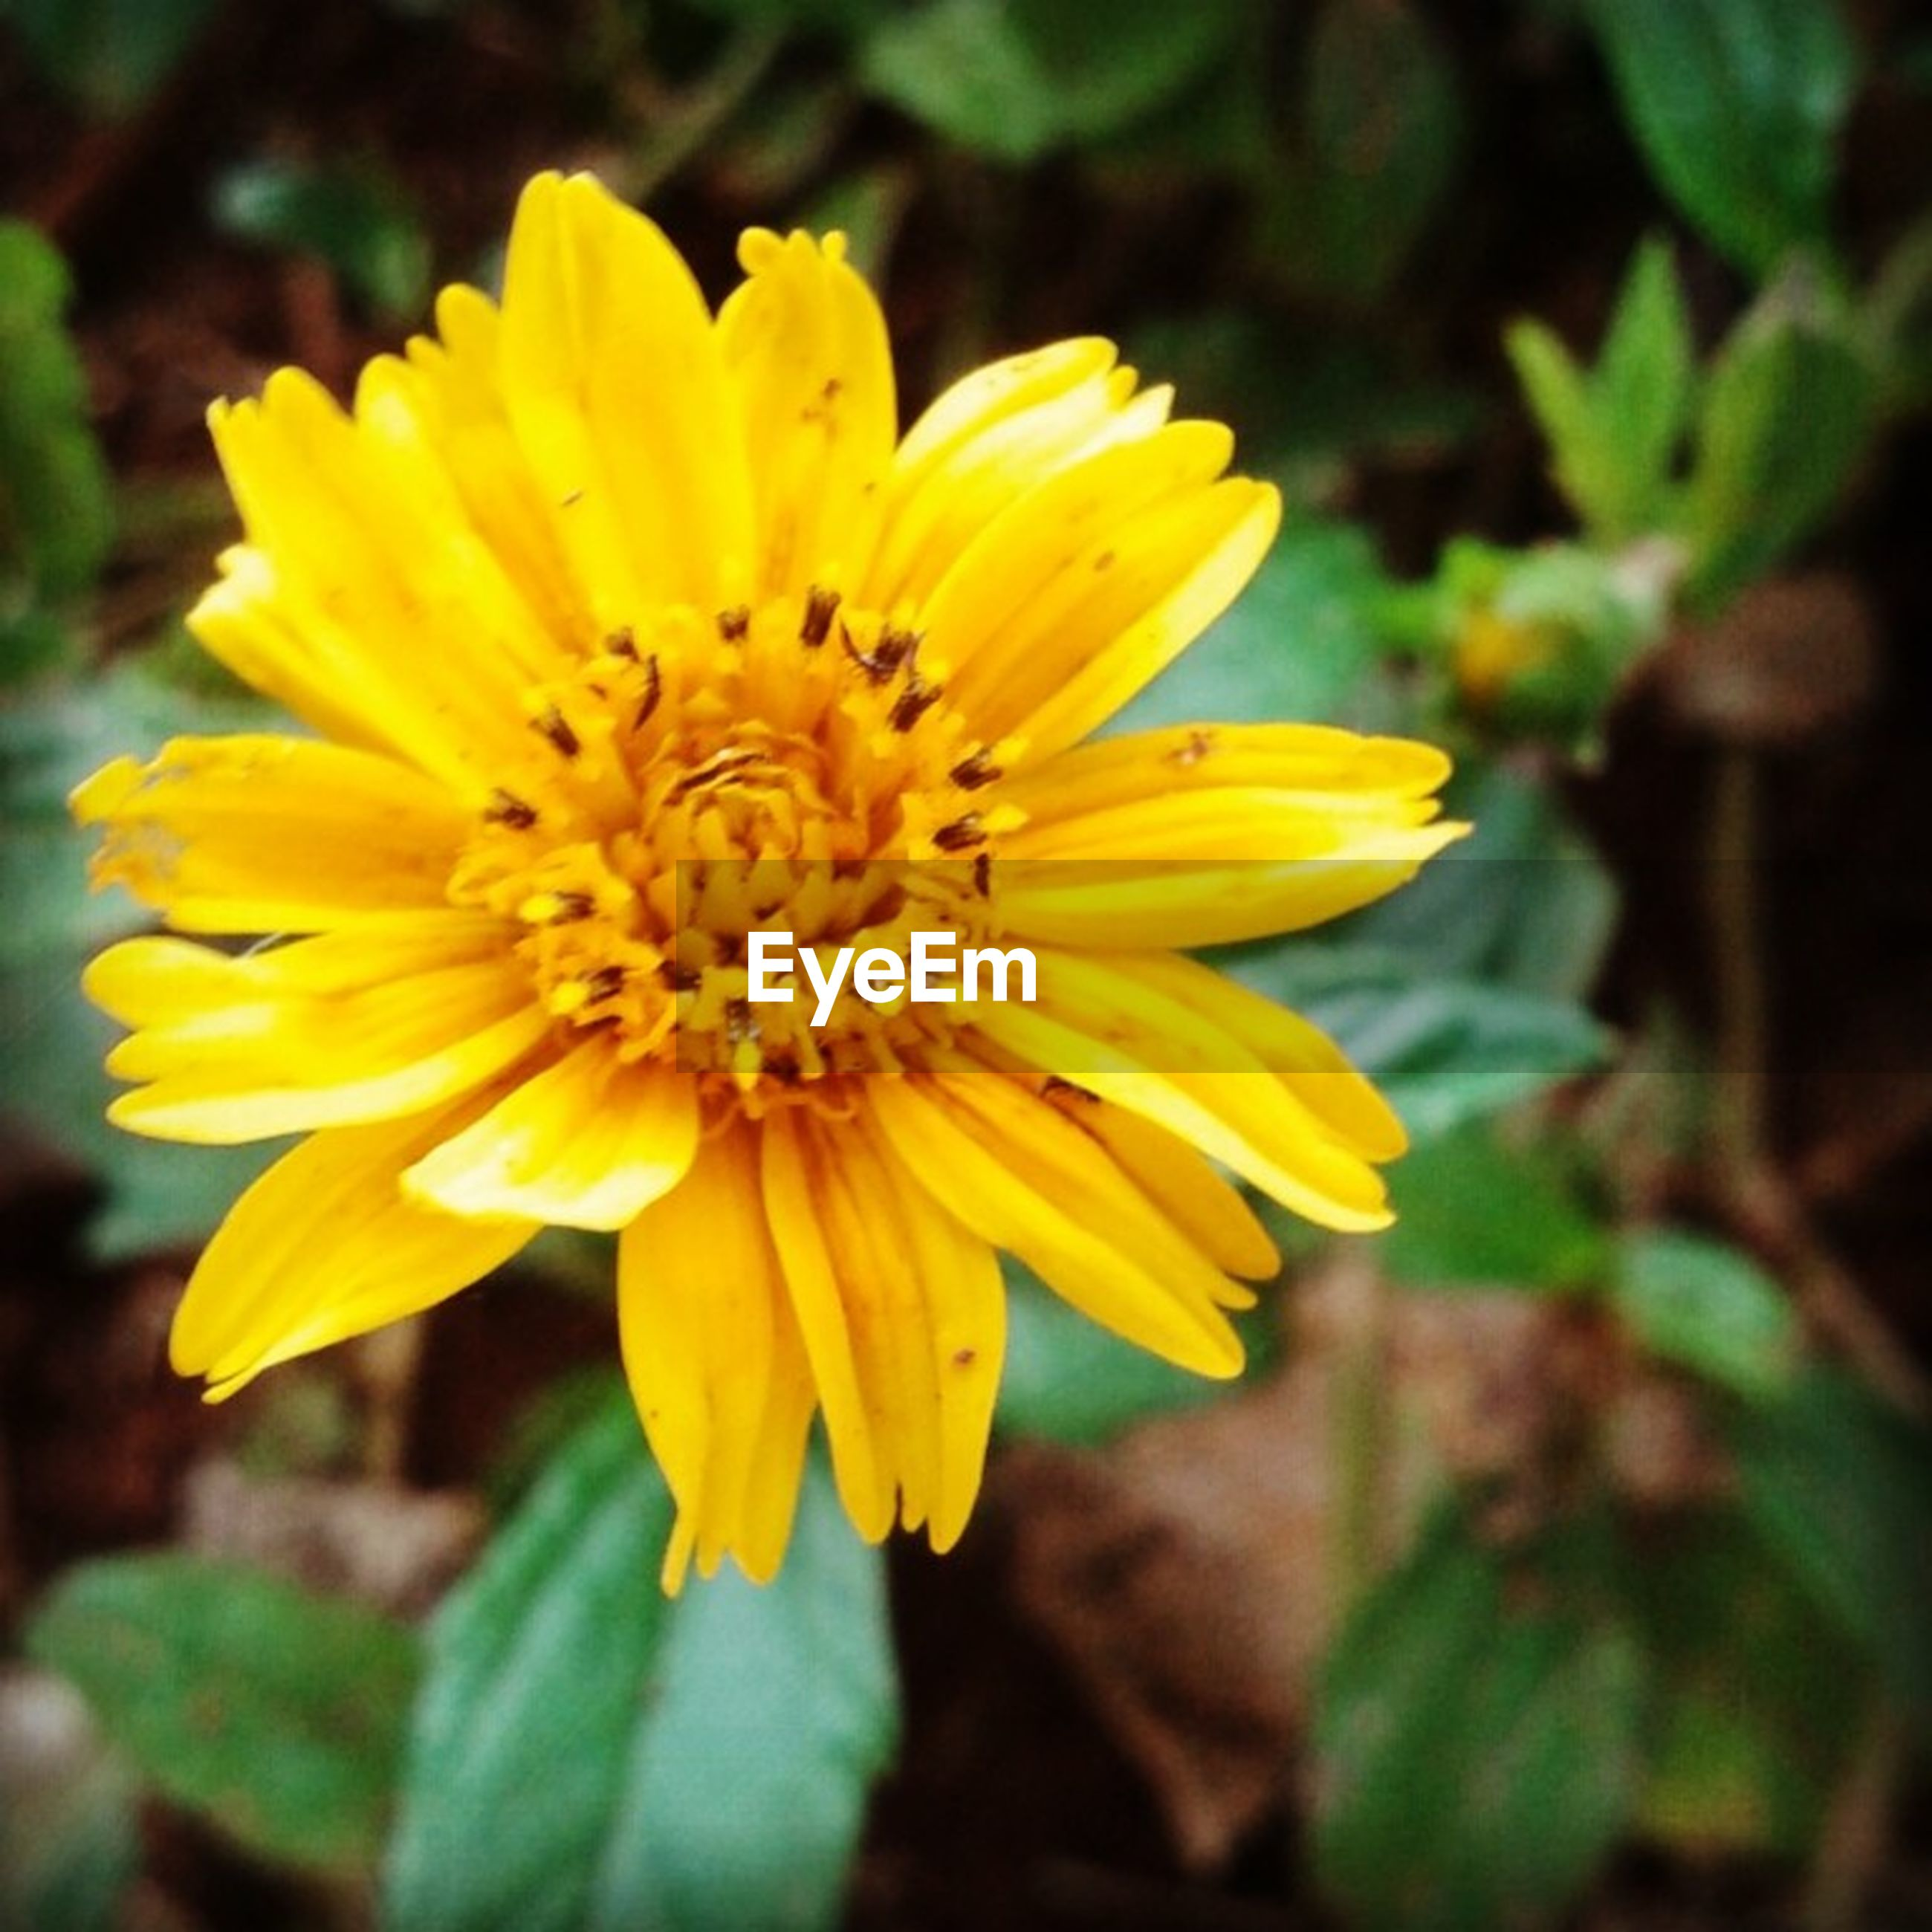 flower, petal, yellow, freshness, flower head, fragility, growth, focus on foreground, close-up, beauty in nature, blooming, pollen, nature, plant, single flower, in bloom, park - man made space, outdoors, day, no people